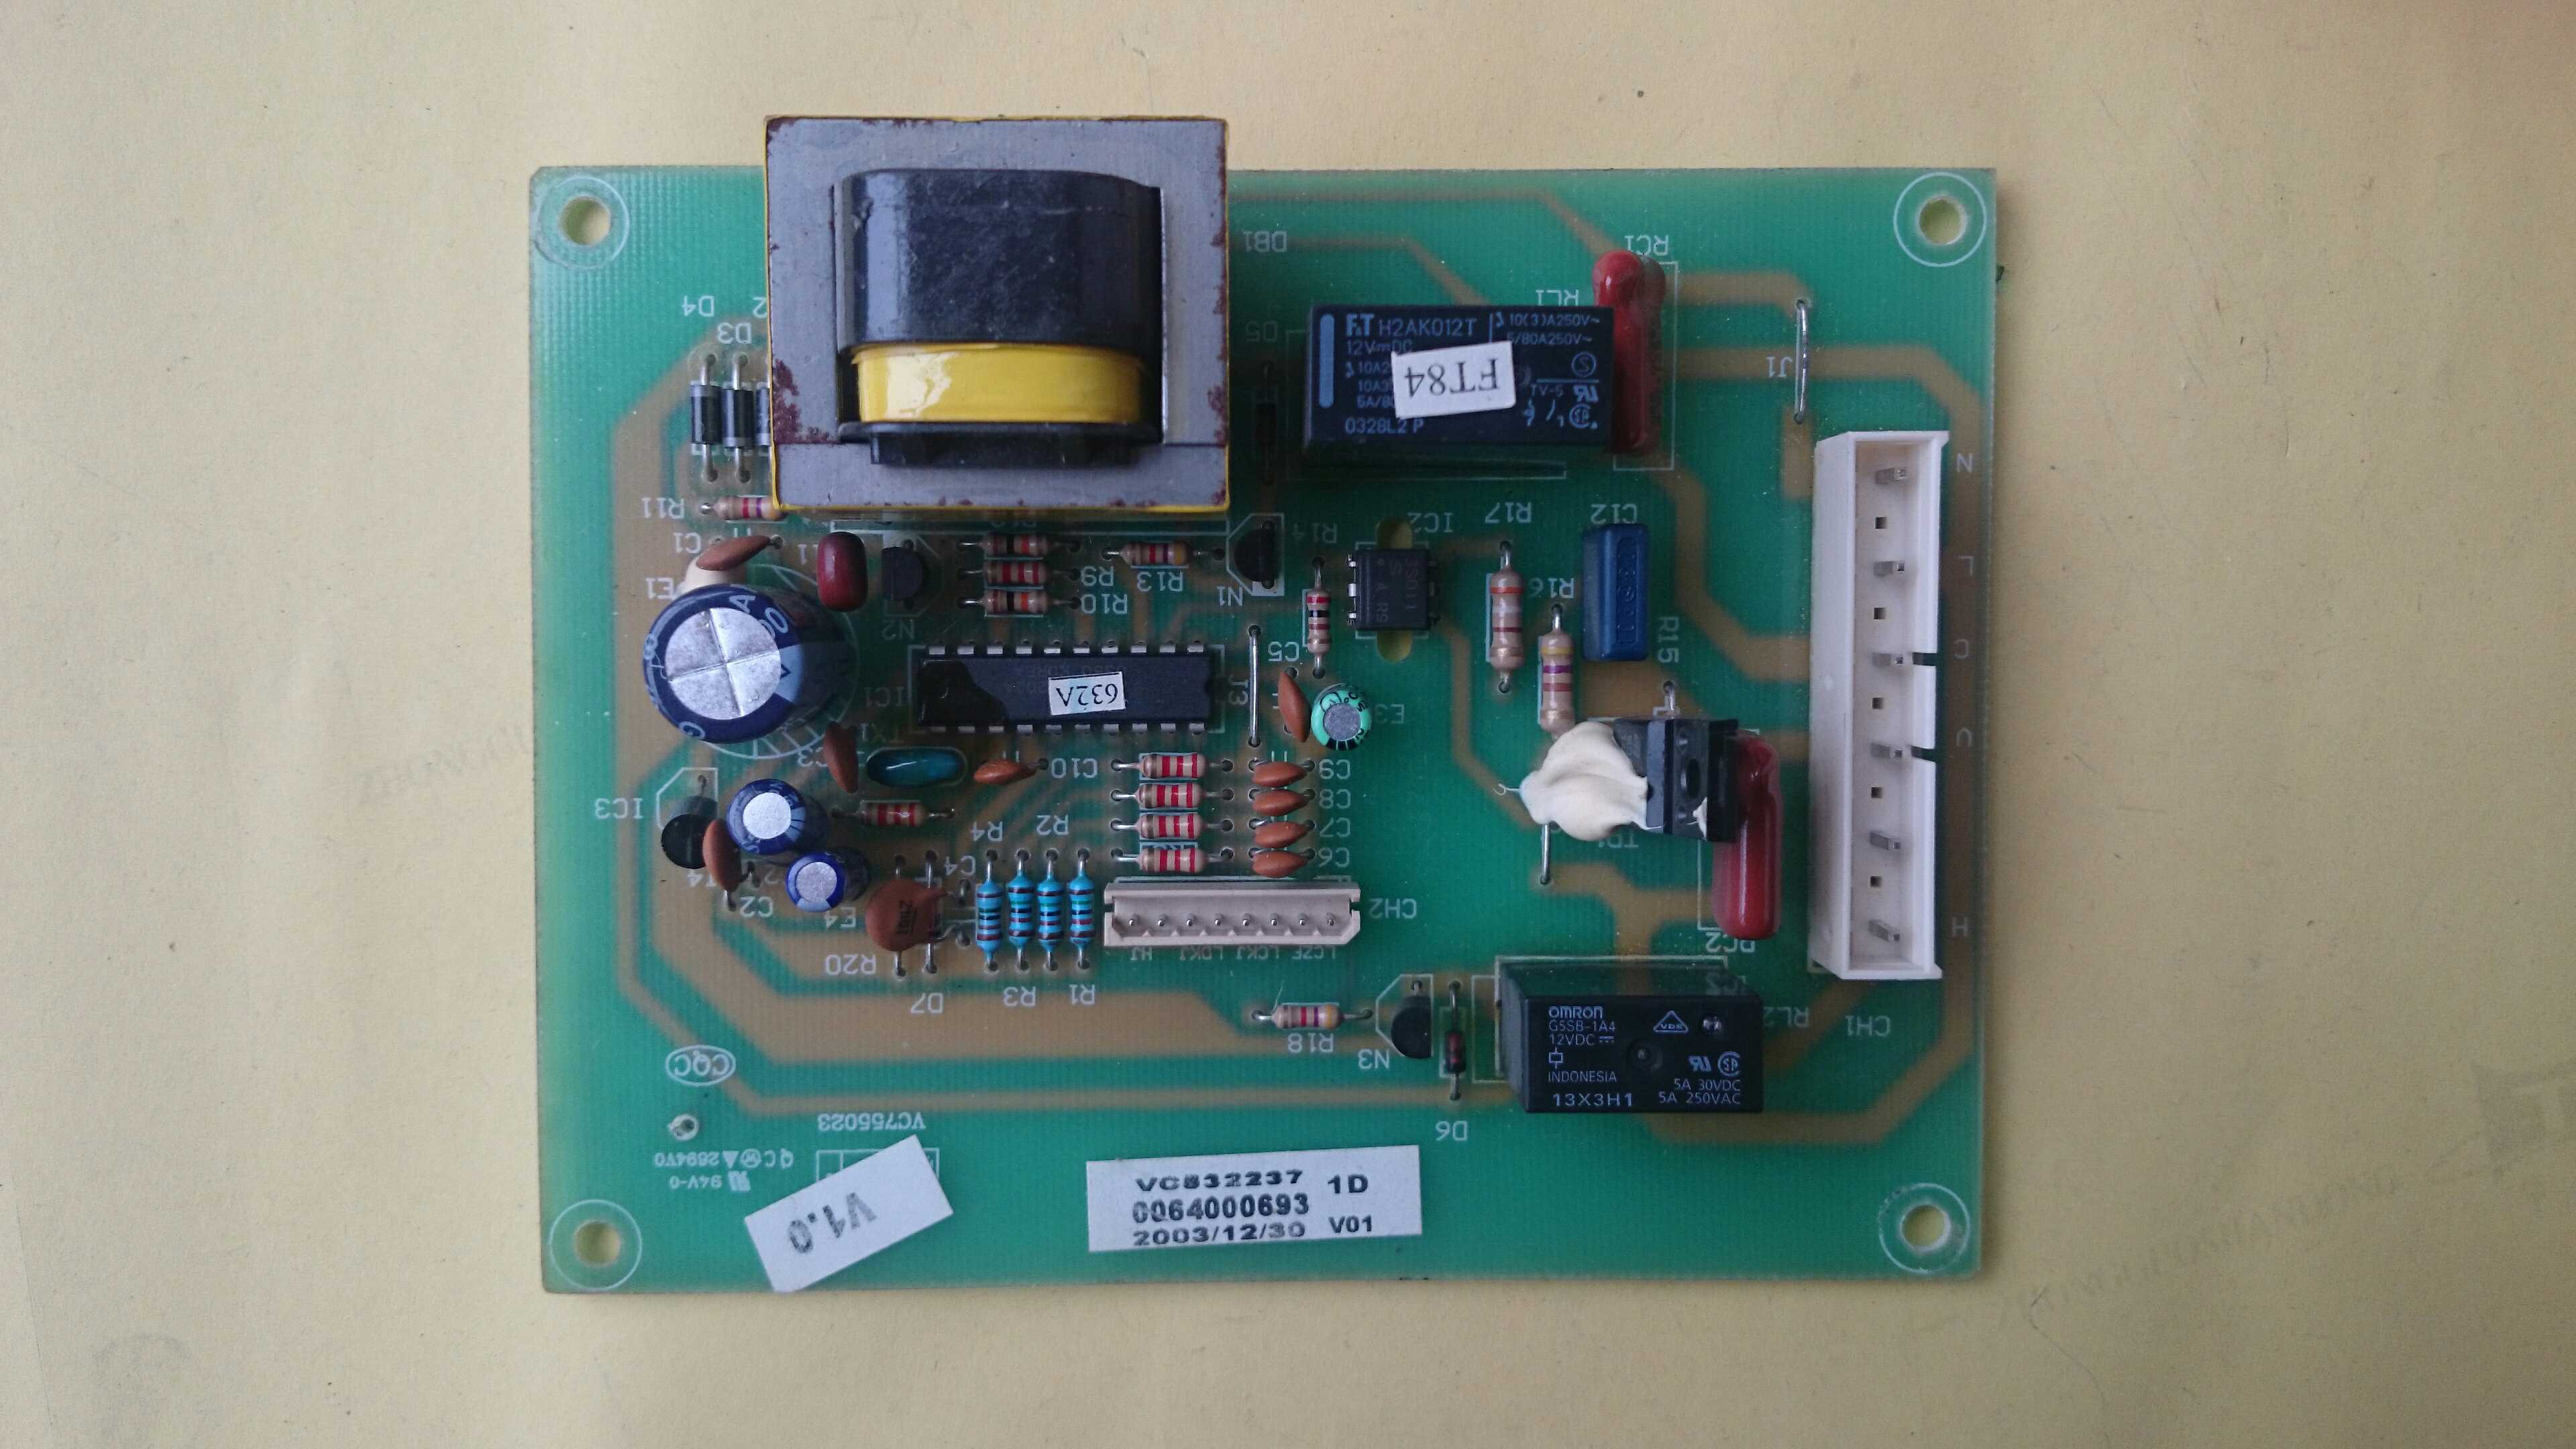 The original Haier refrigerator power main control board 0064000693 for Haier refrigerator BCD-206ZMD 95% new for haier refrigerator computer board circuit board bcd 198k 0064000619 driver board good working